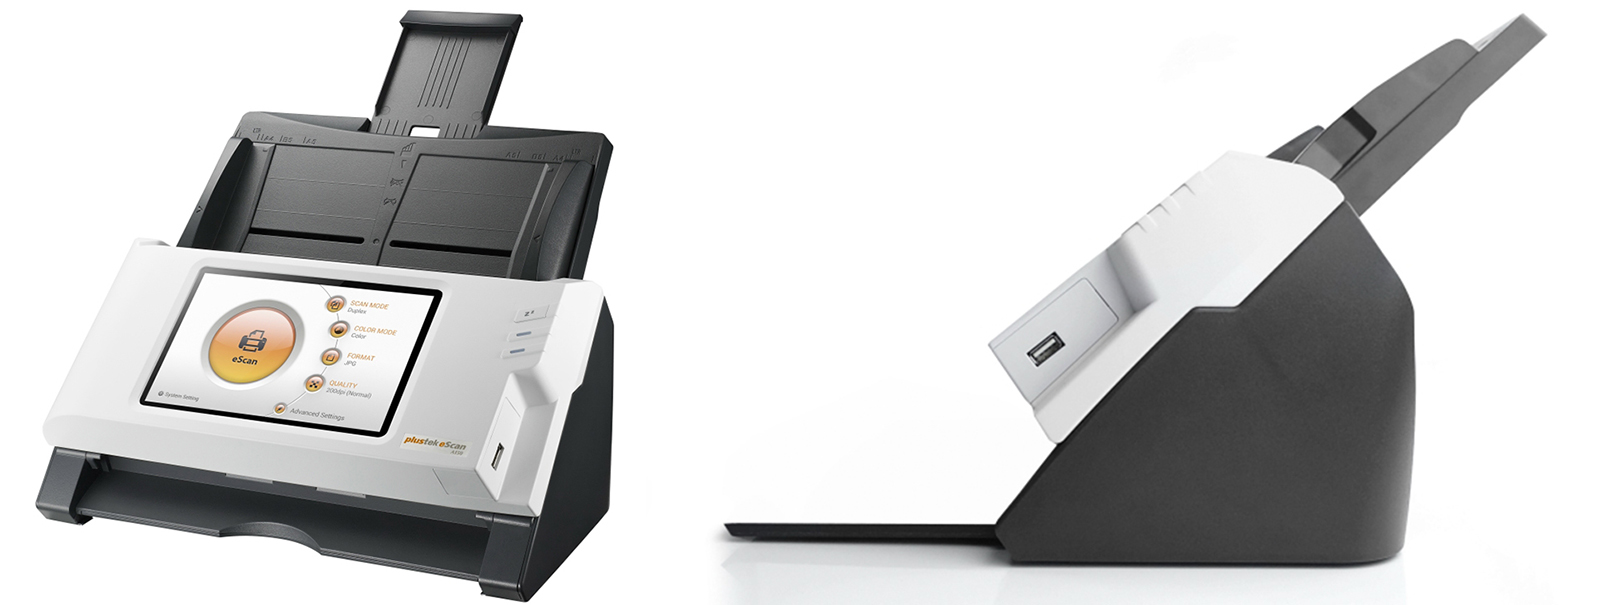 Plustek eScan A250, recensione dello scanner per documenti professionale